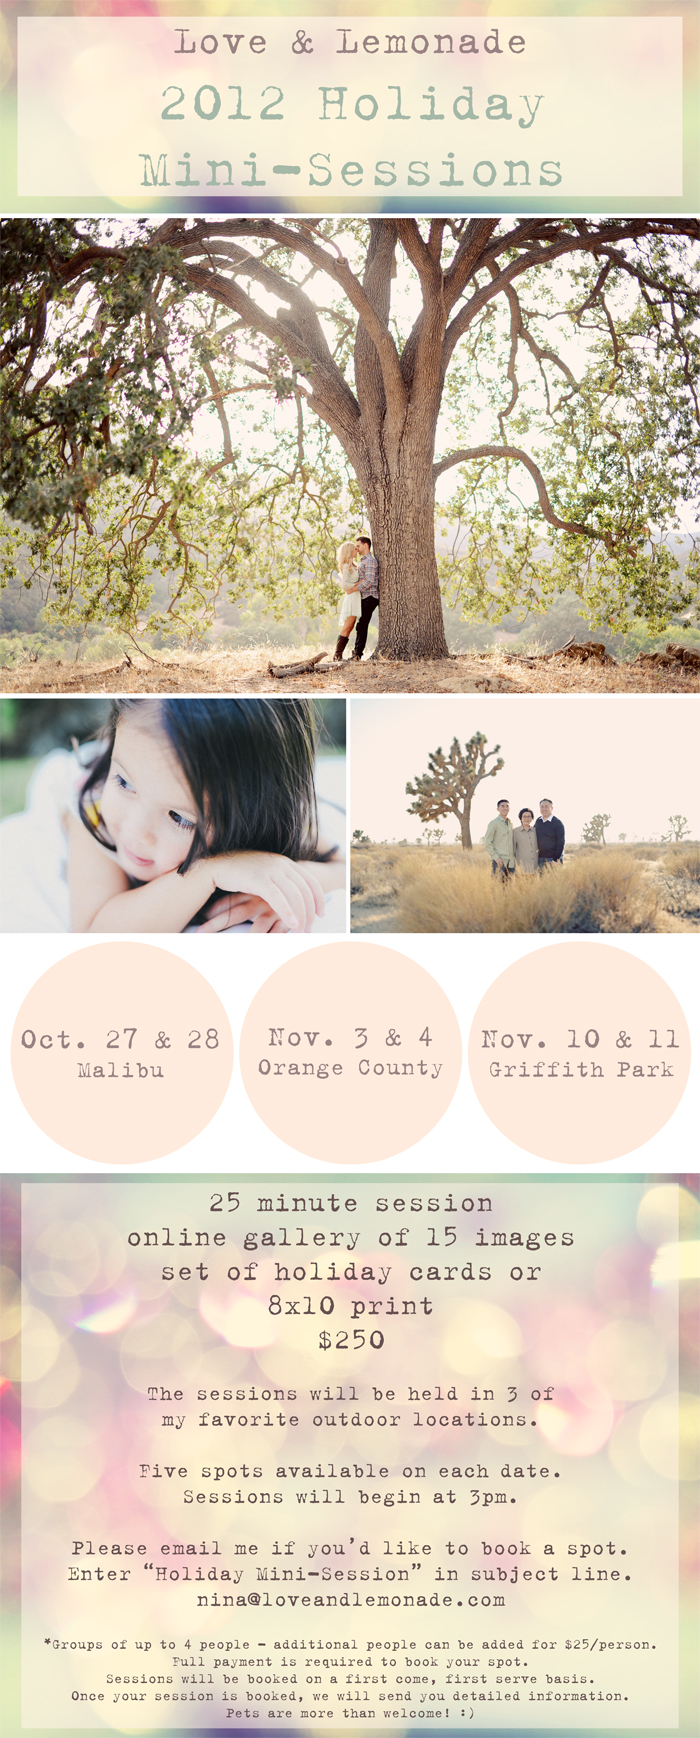 2012 Holiday Mini-Sessions!